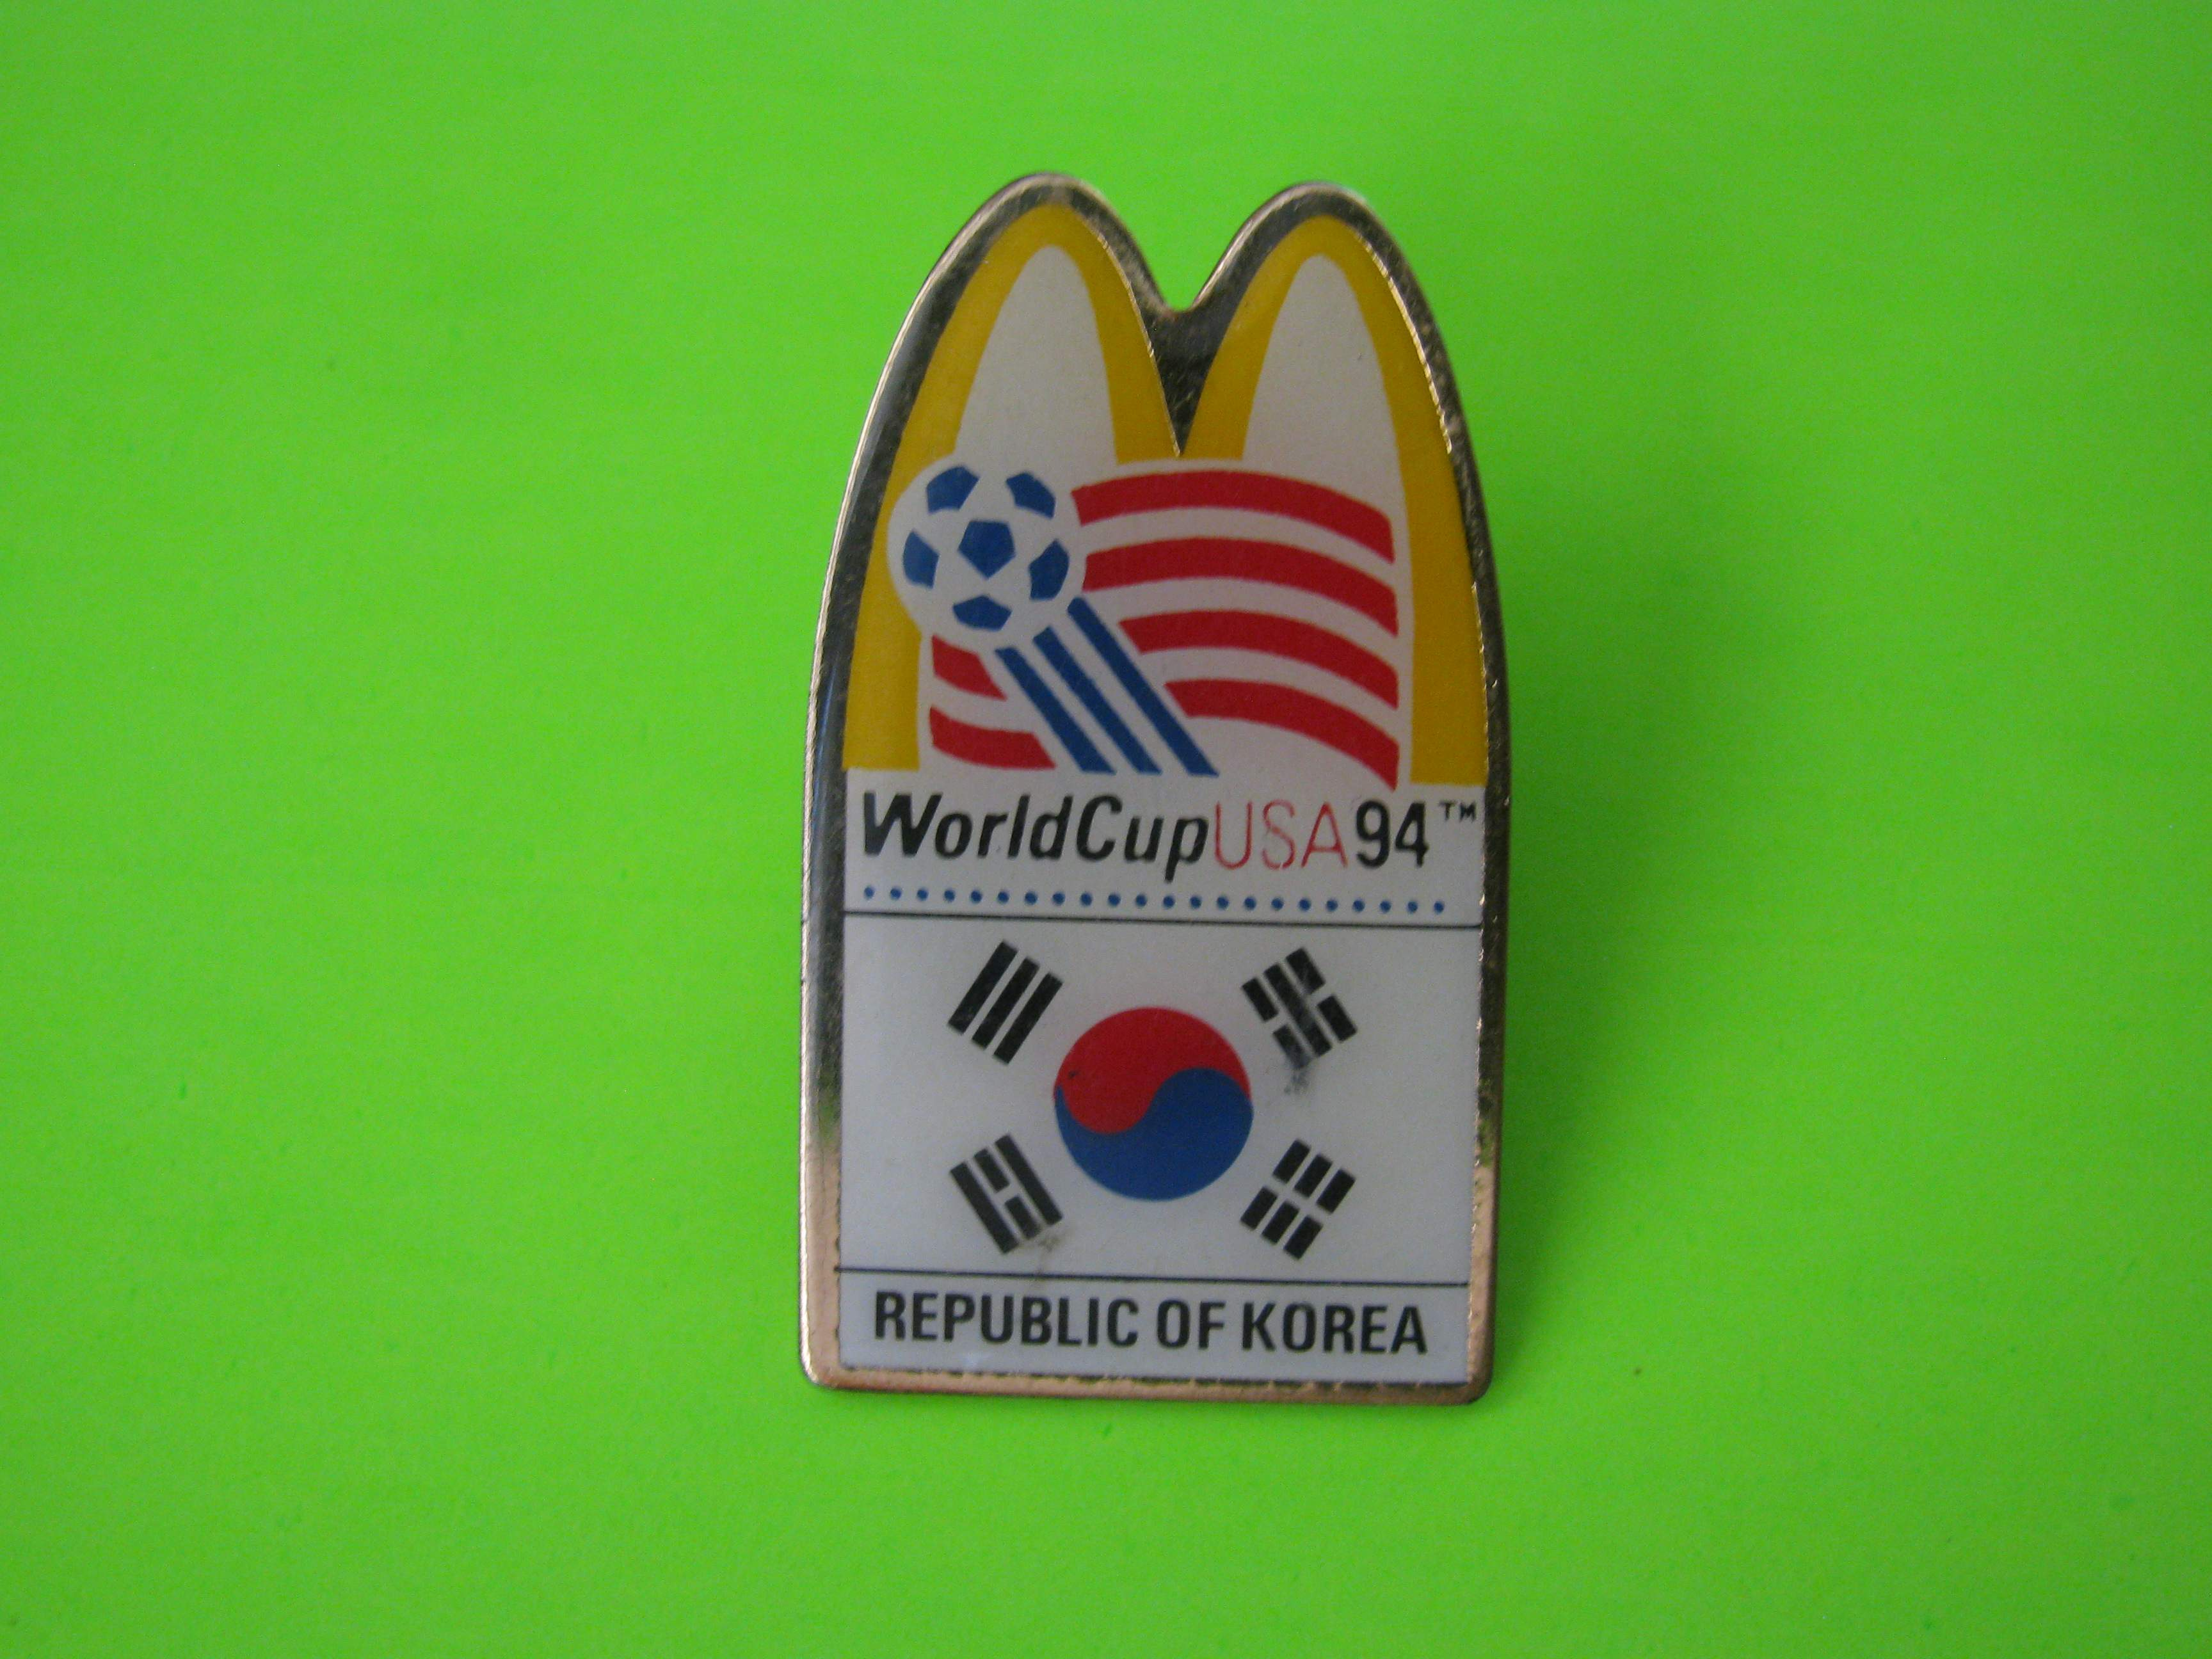 1994 World Cup USA McDonald's Team Republic of Korea Soccer Pin with Butterfly Clutch